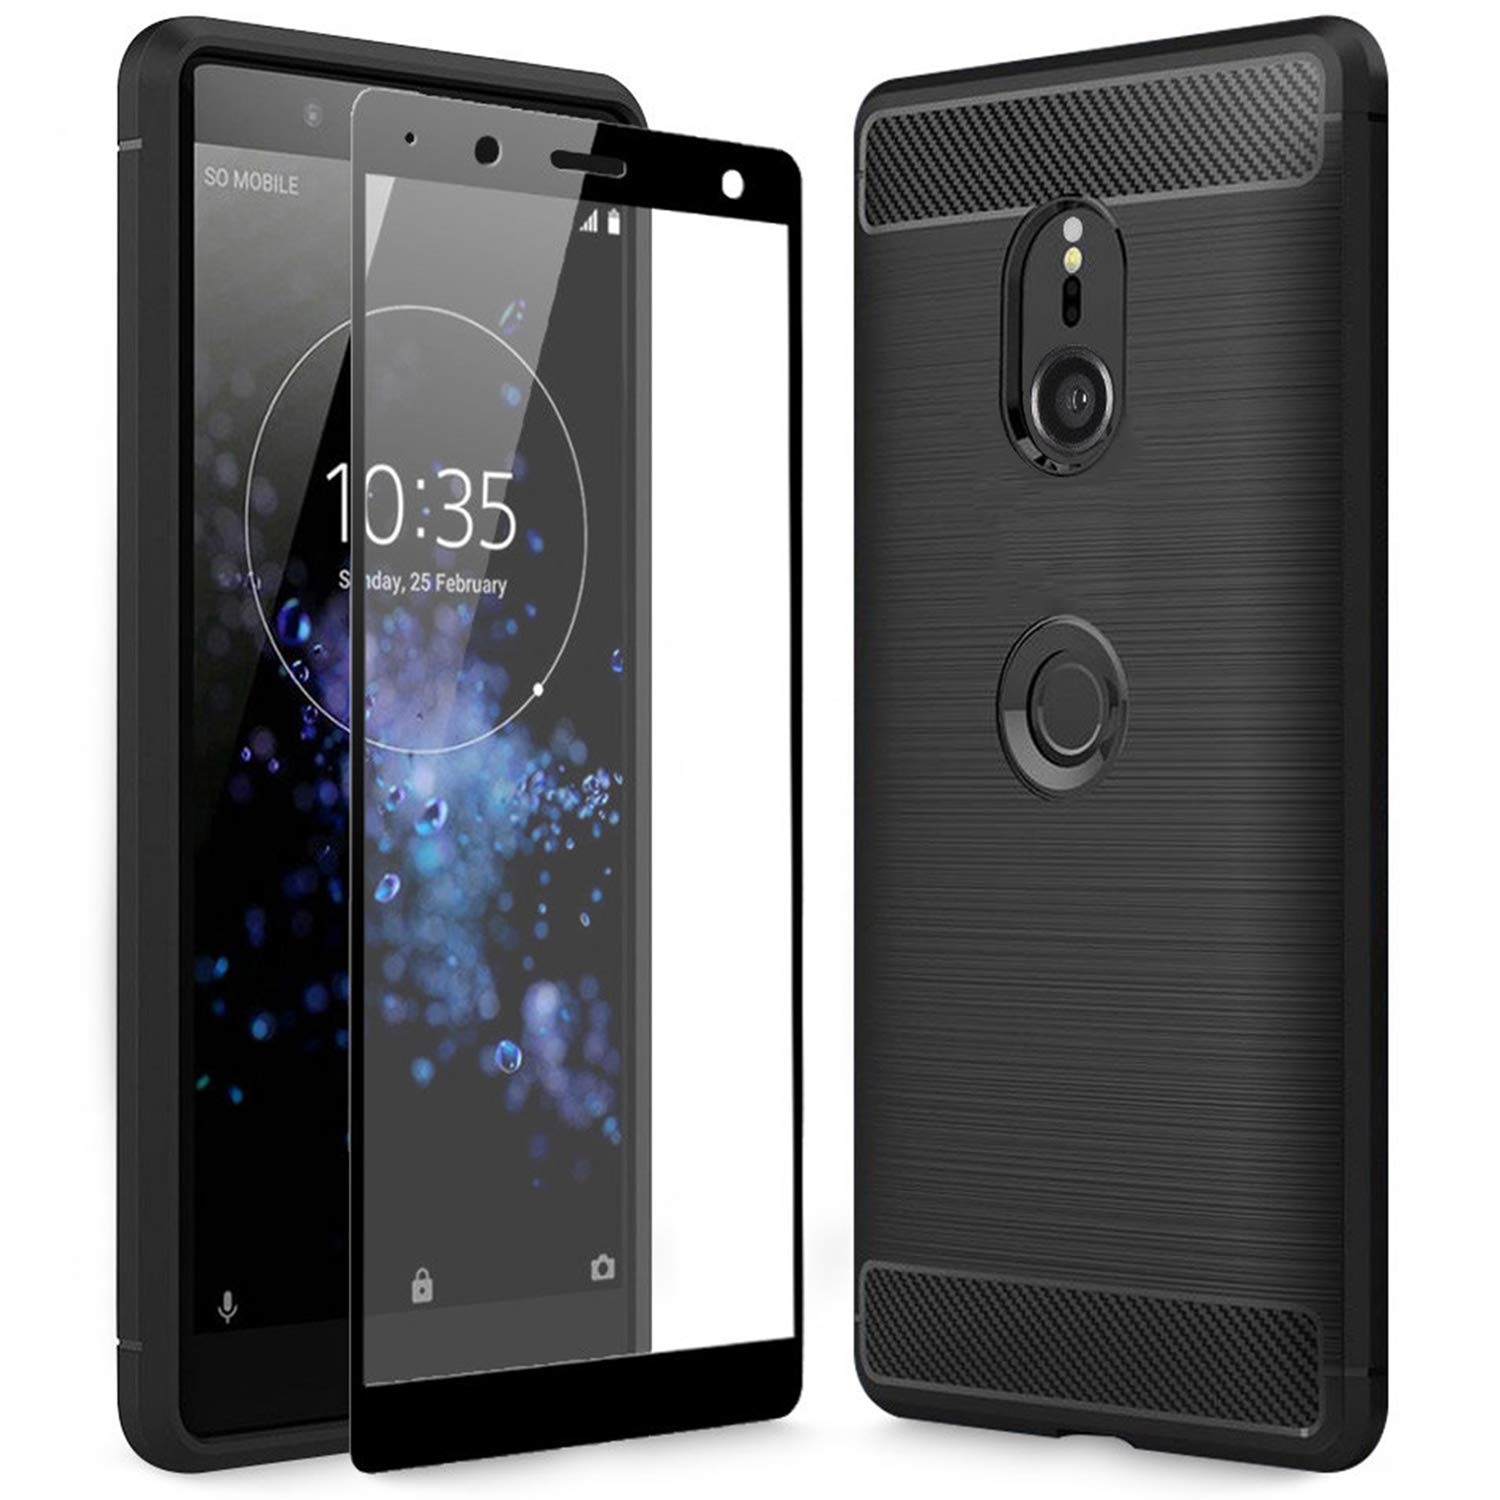 c1912986c5 Olixar Sony Xperia XZ3 Case With Screen Protector - Case Compatible  Tempered Glass - Tough Case - Front + Back Protection - Wireless Charging  Compatible ...